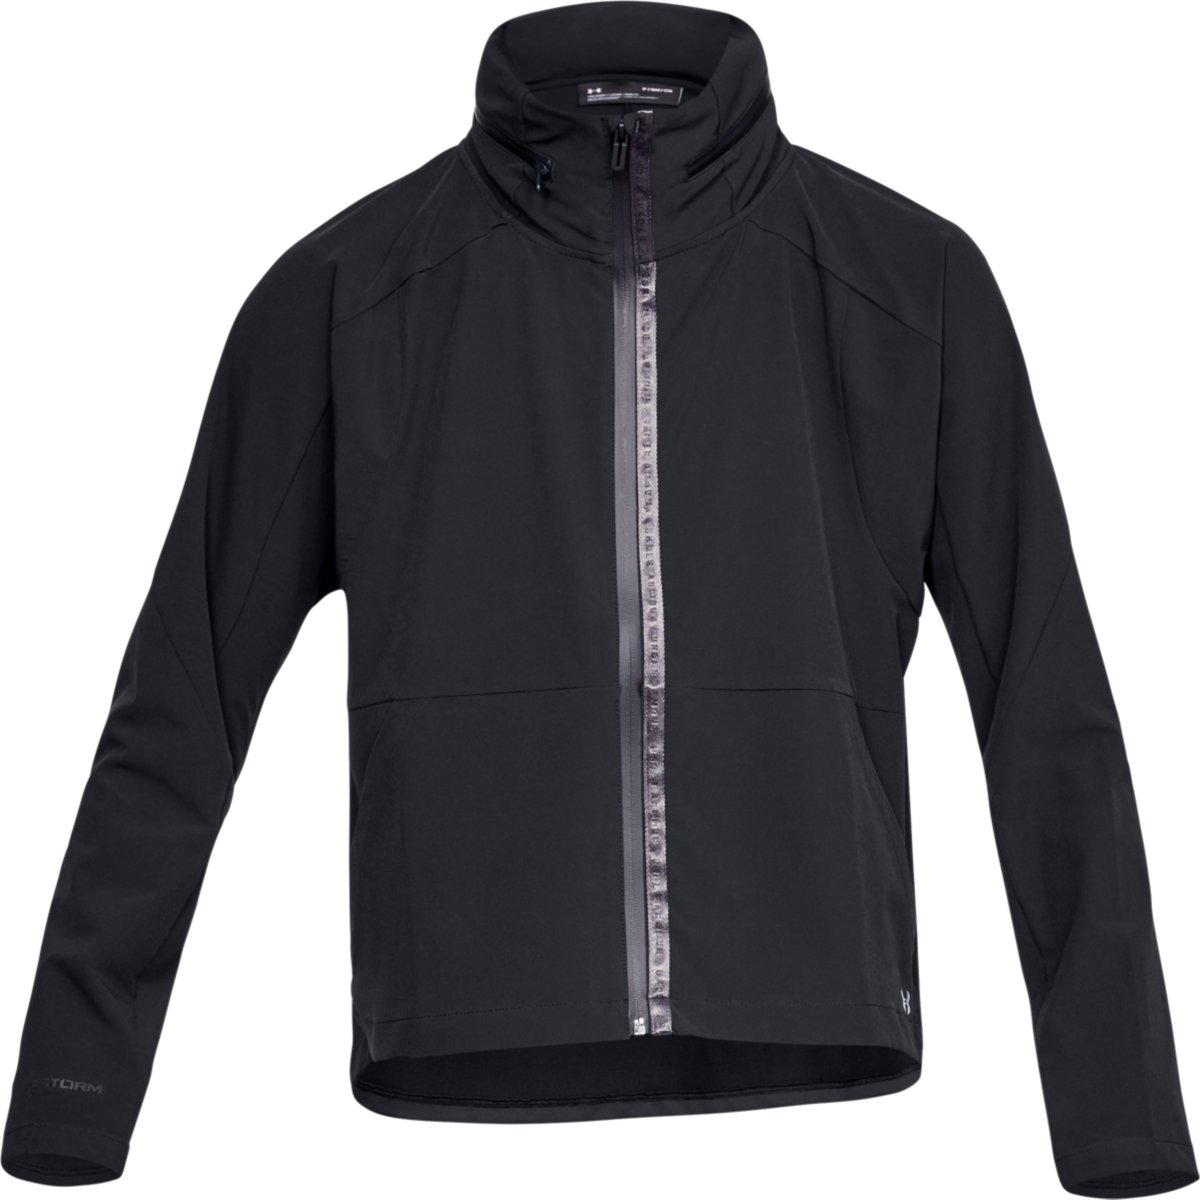 f95526c3 Under Armour Women's Unstoppable Woven Full Zip Jacket